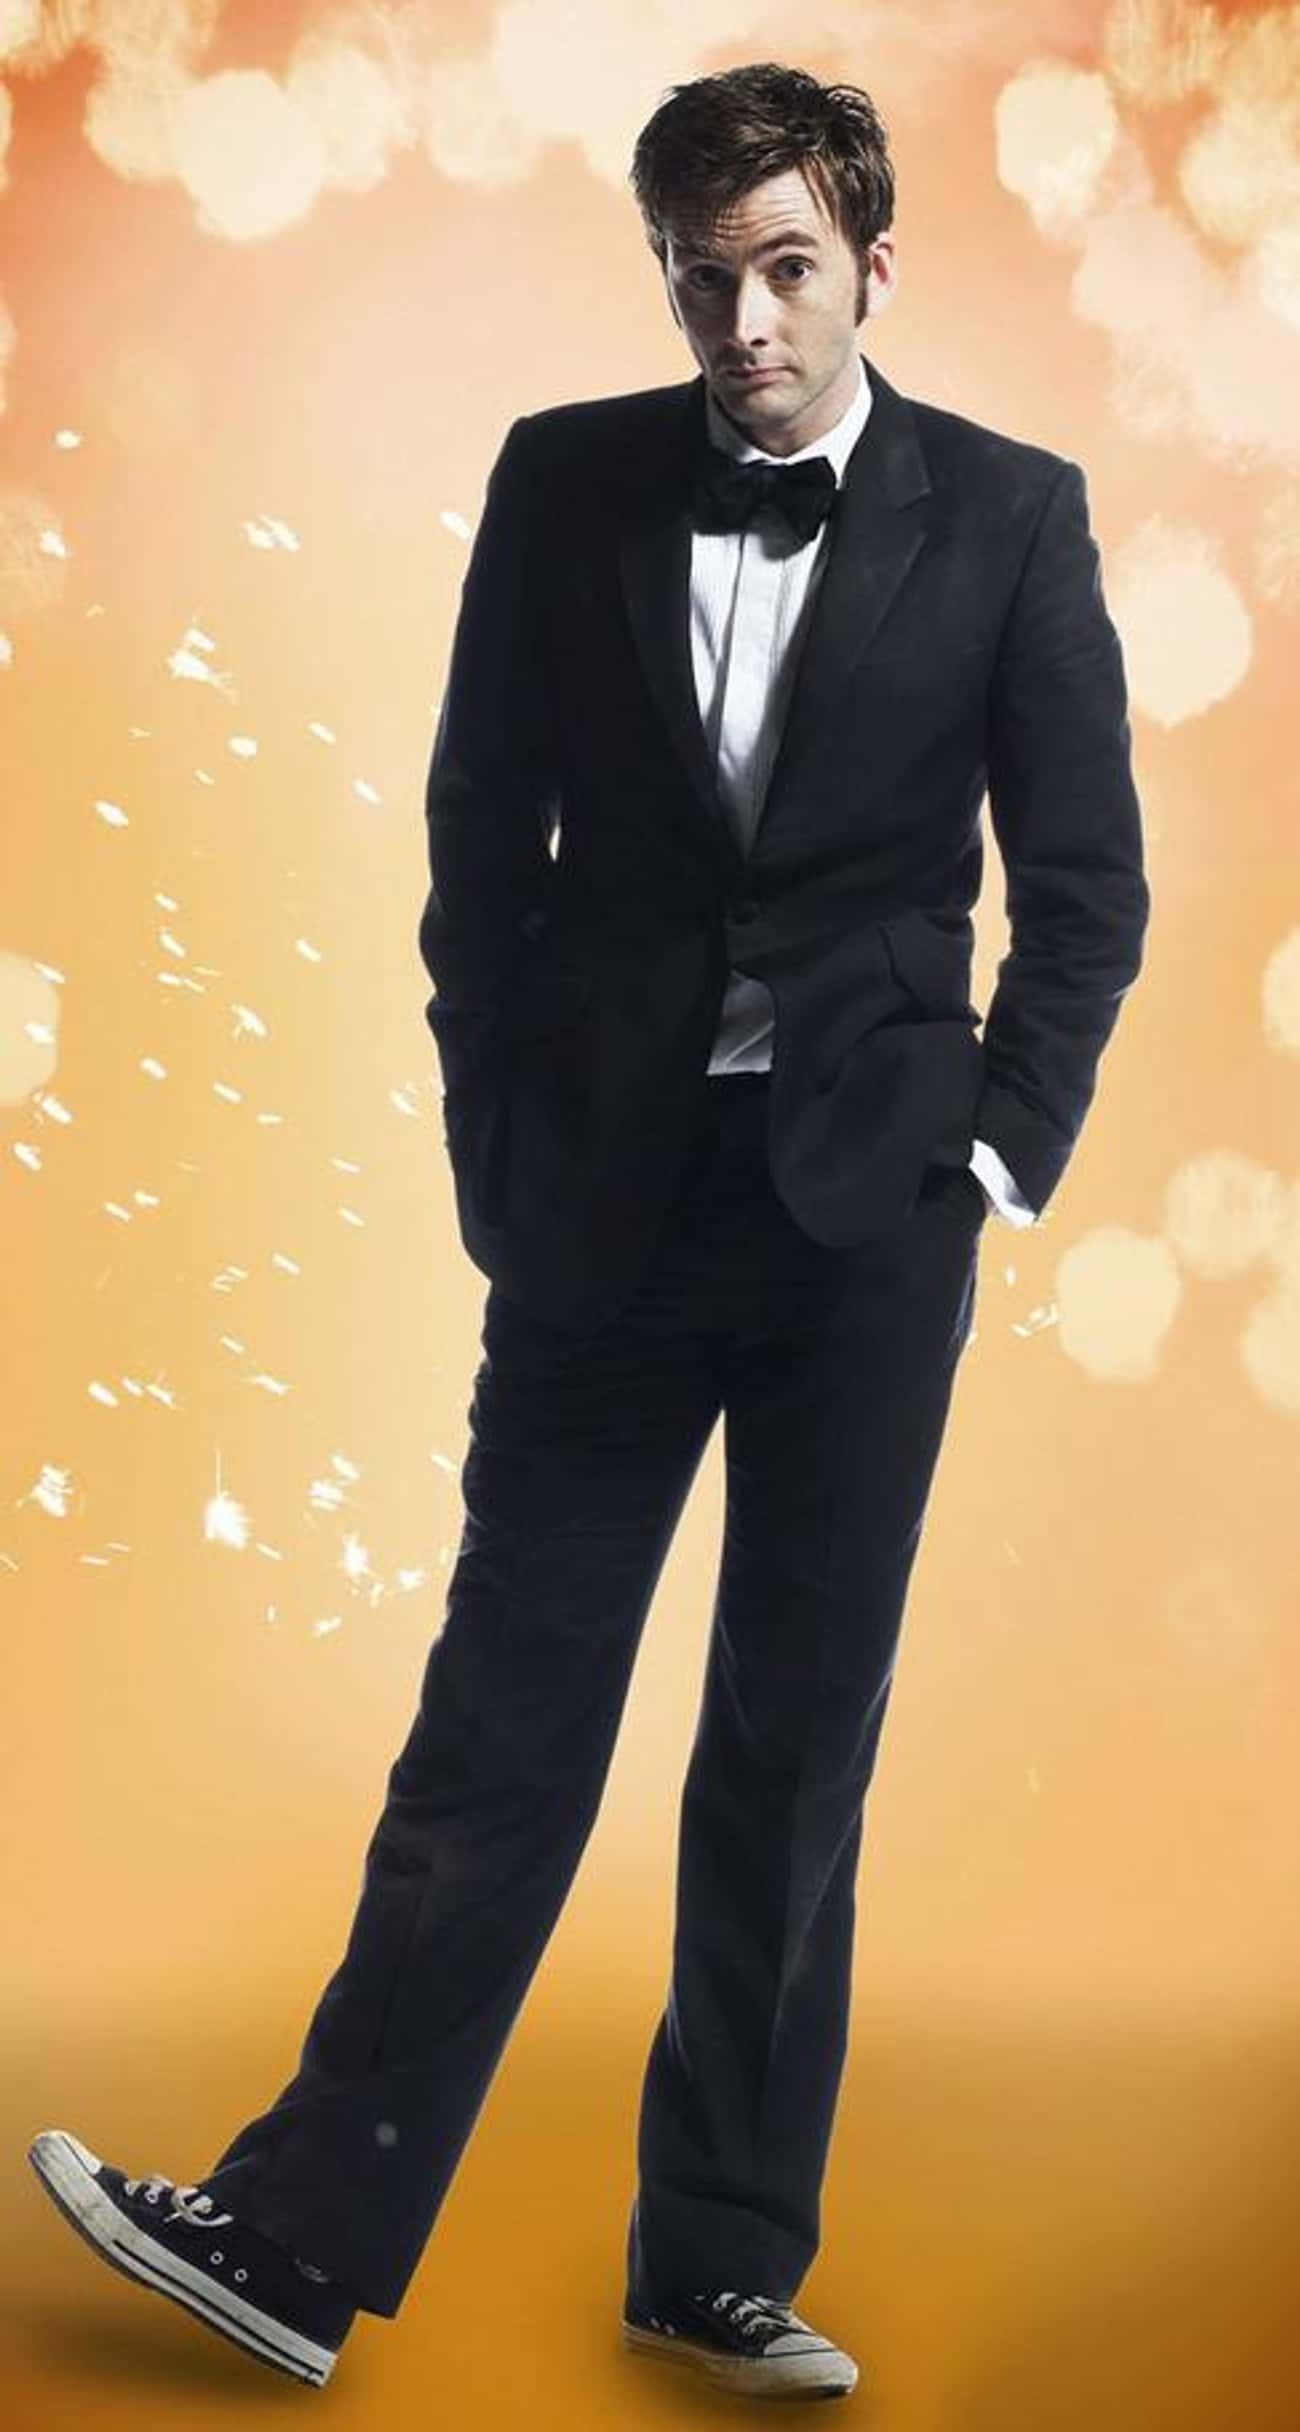 David Tennant in Slim Fit Blaz is listed (or ranked) 1 on the list Hot David Tennant Photos